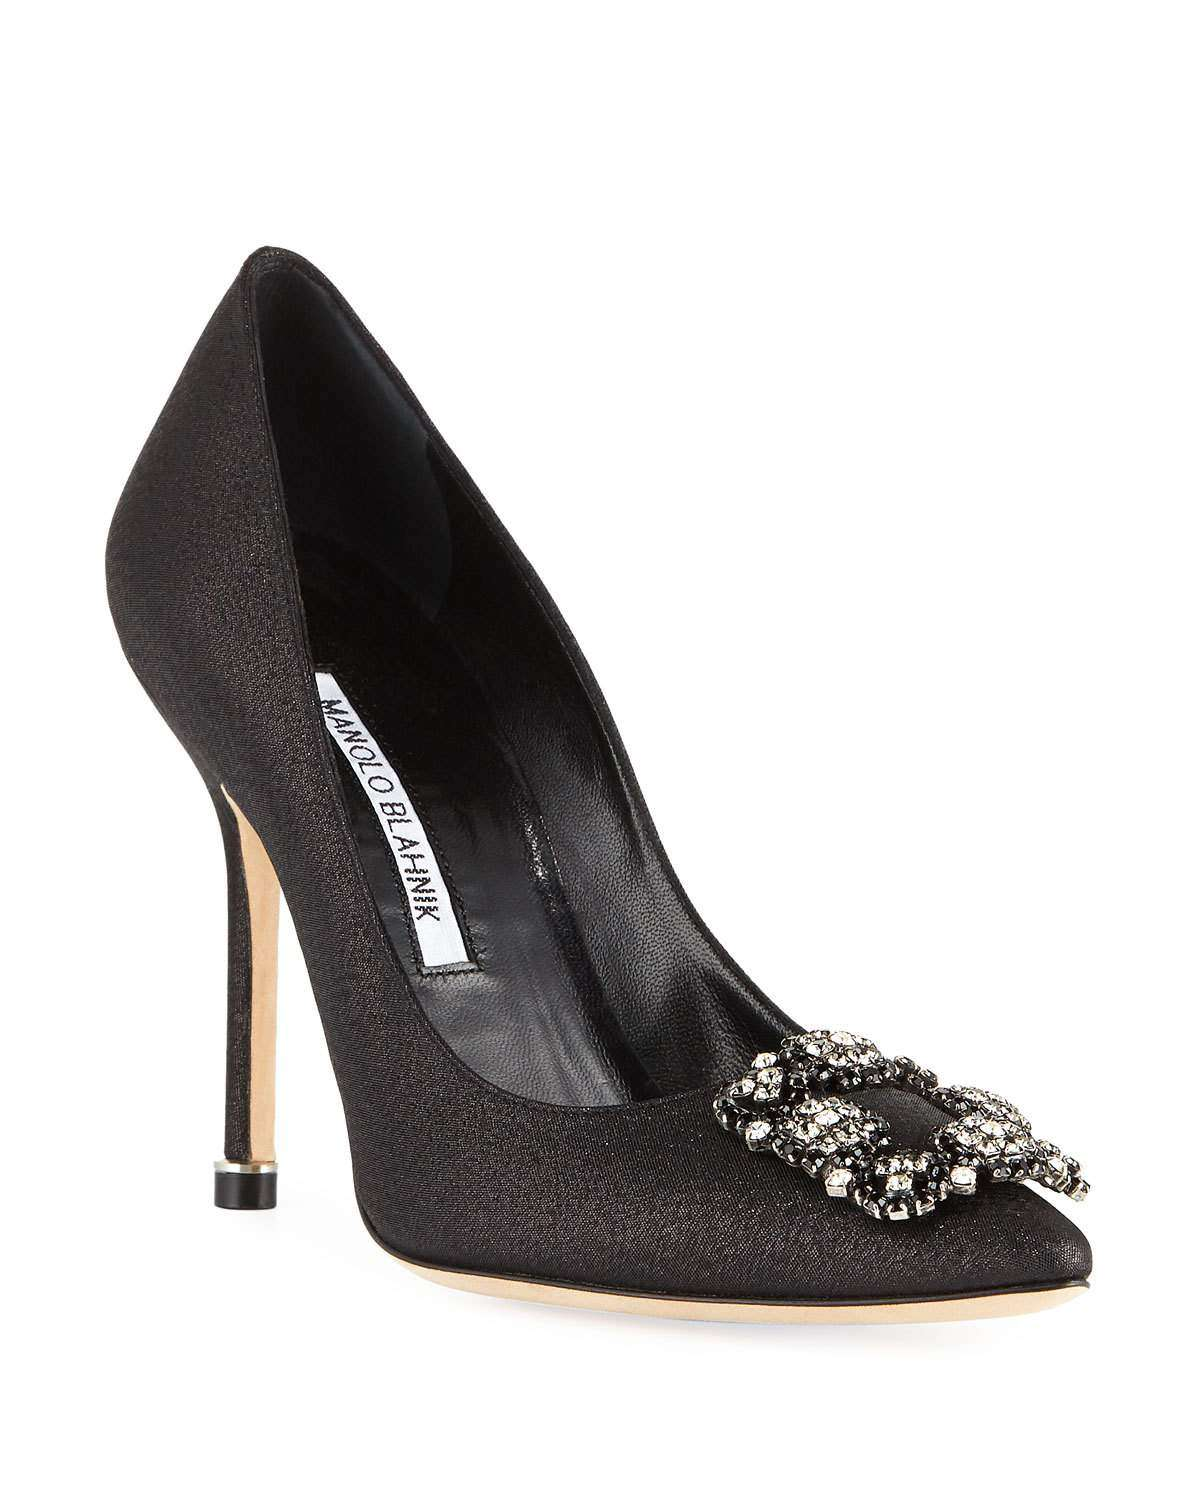 Hangisi Crystal-Buckle 105mm Pumps